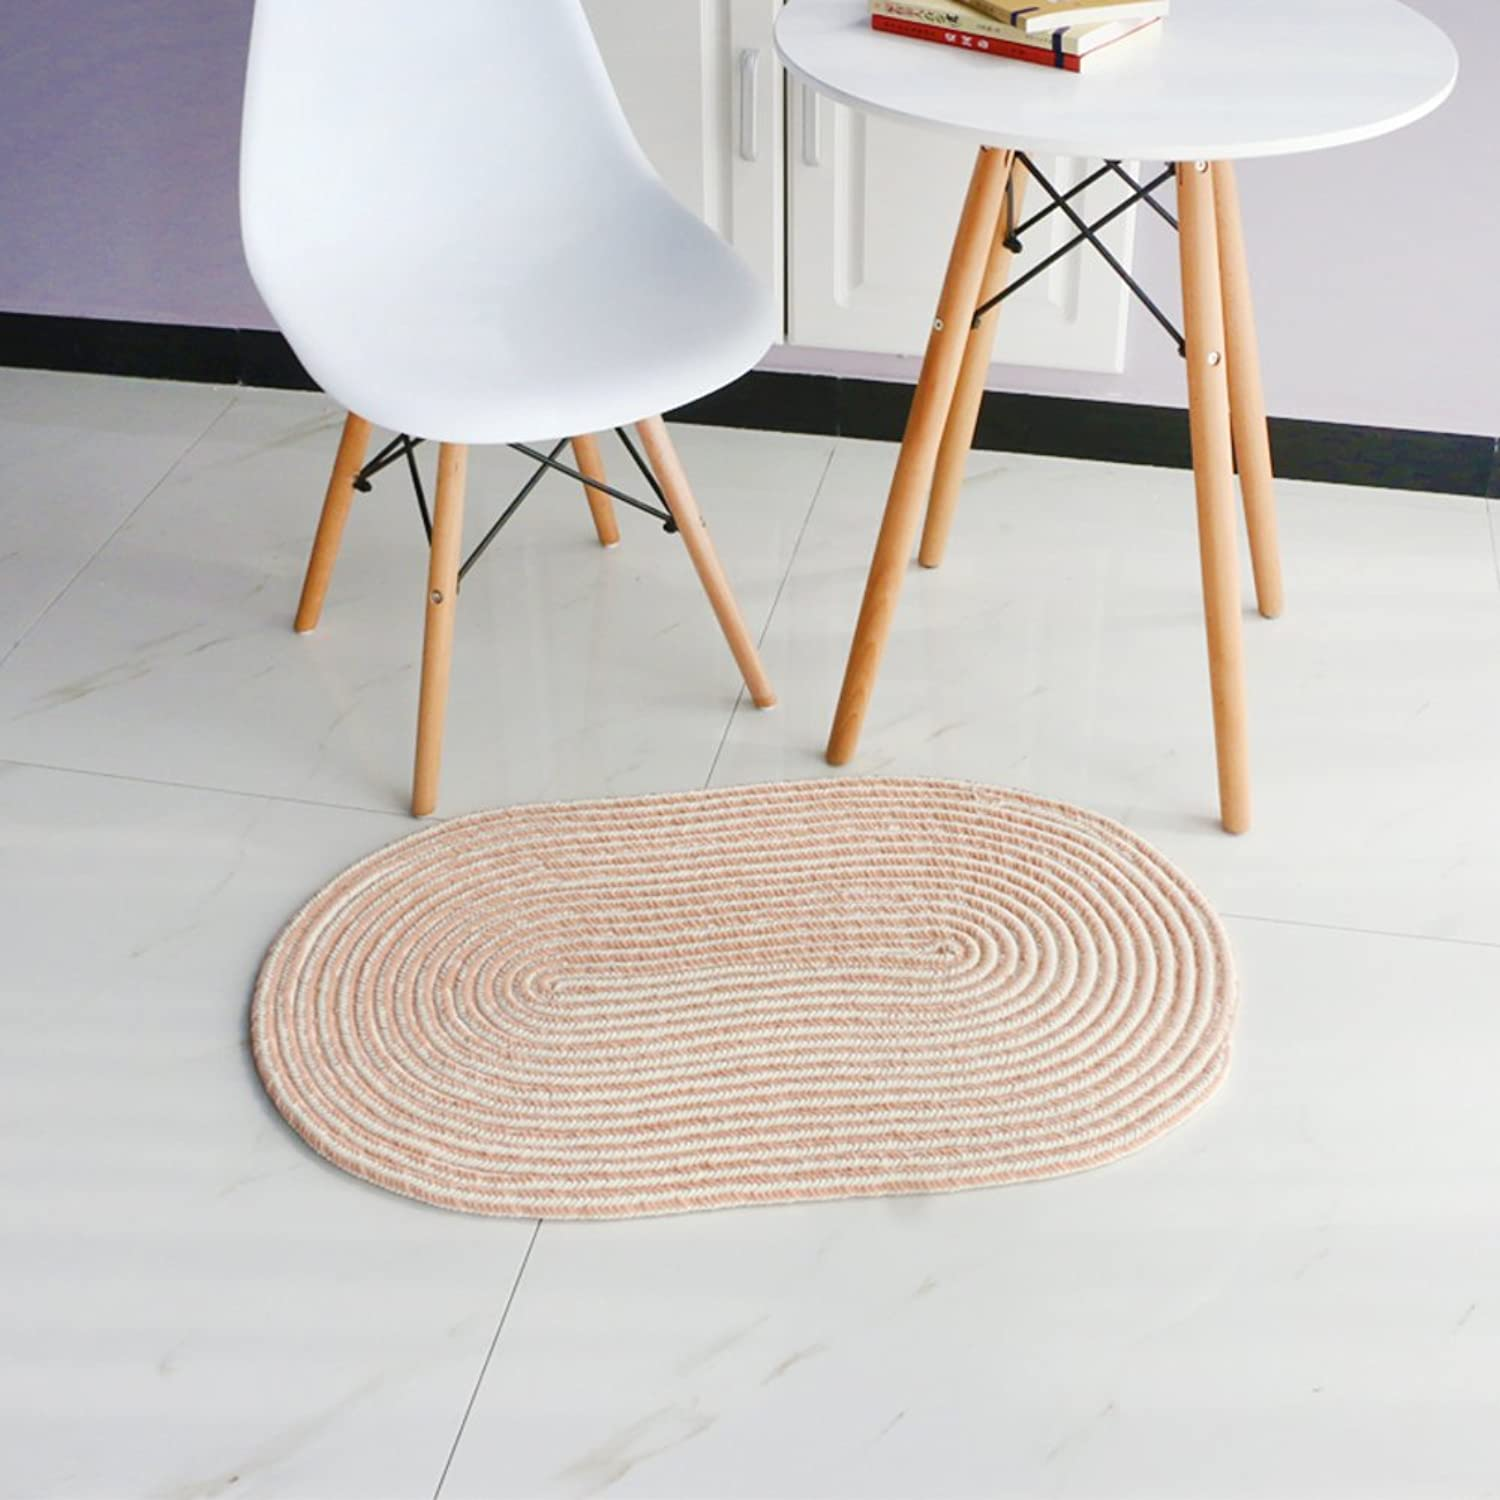 Chenille Weave Round Carpet Living Room Bedroom [Study] Hanging Basket Computer Chair mat Bedroom-D 60x90cm(24x35inch)